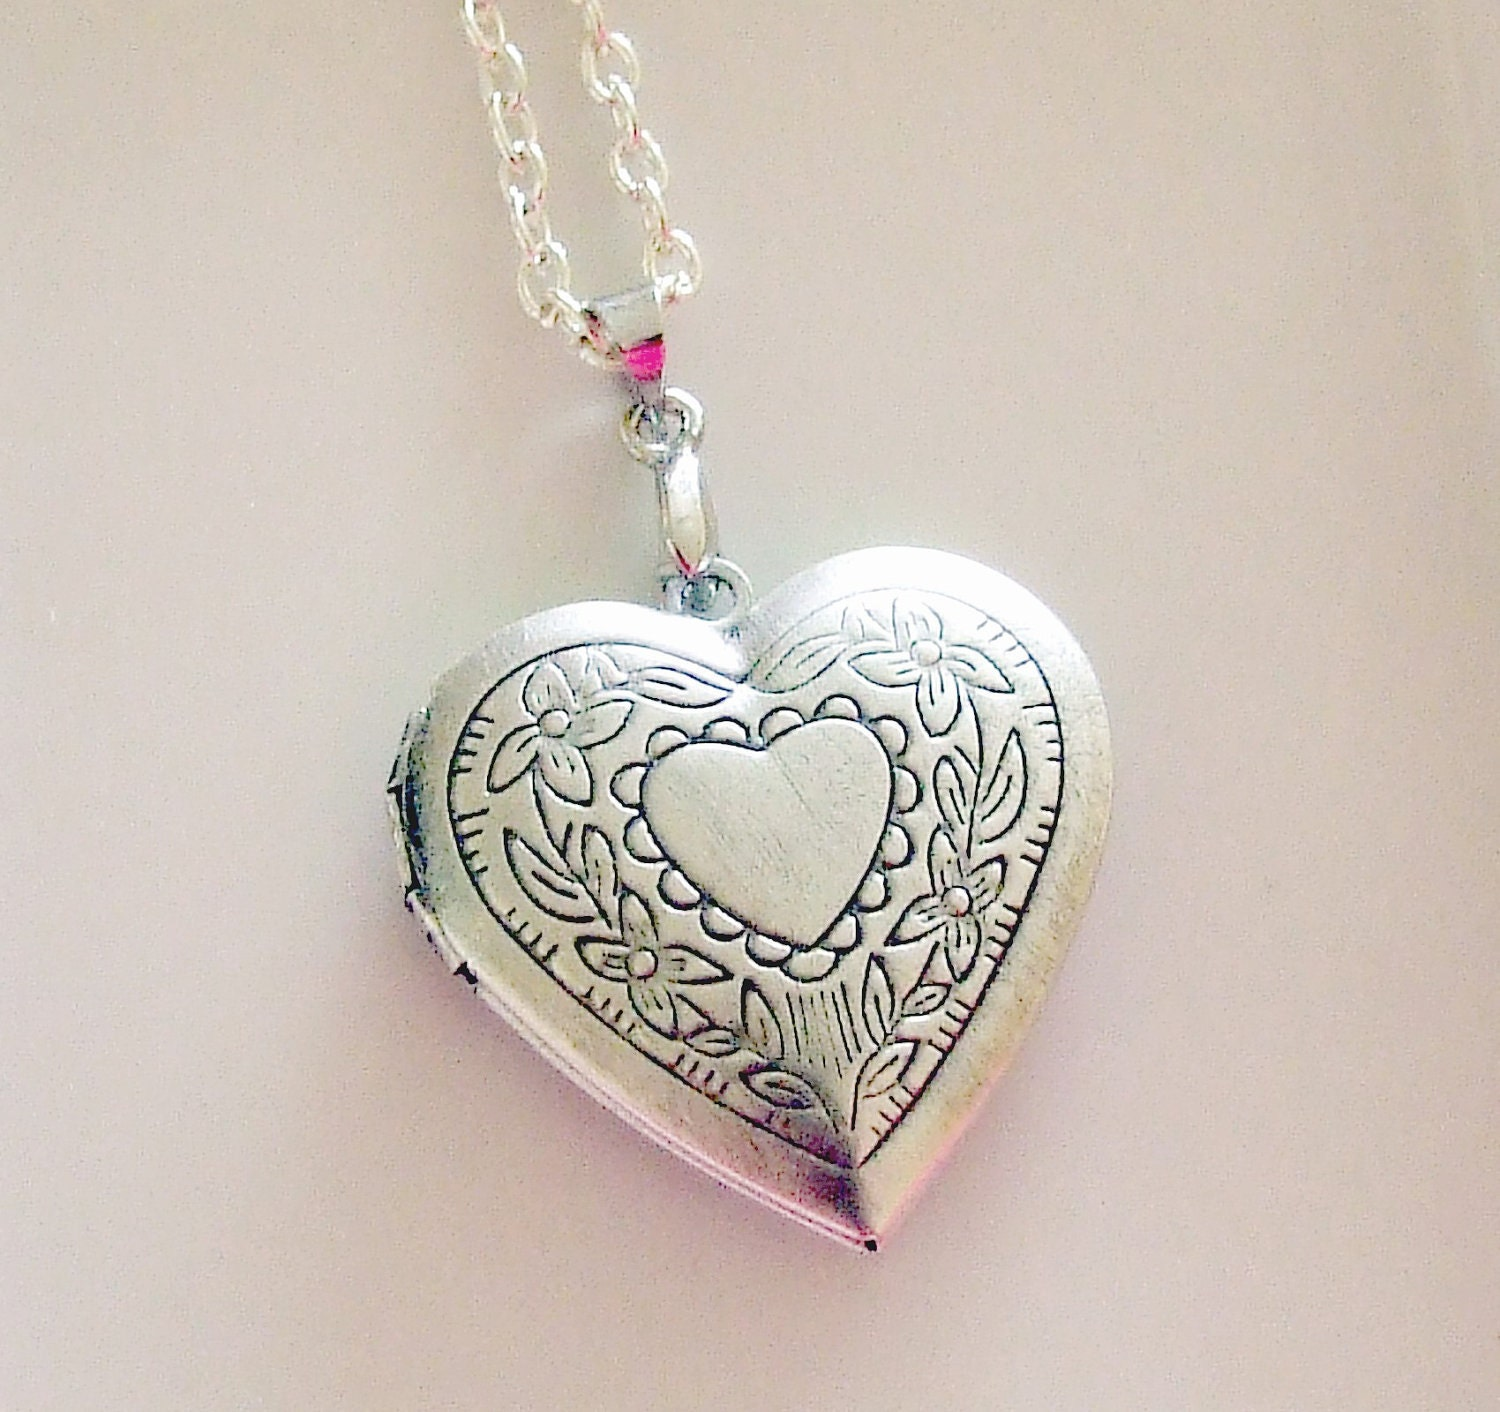 Image Result For Girlfriend Necklace Etsy